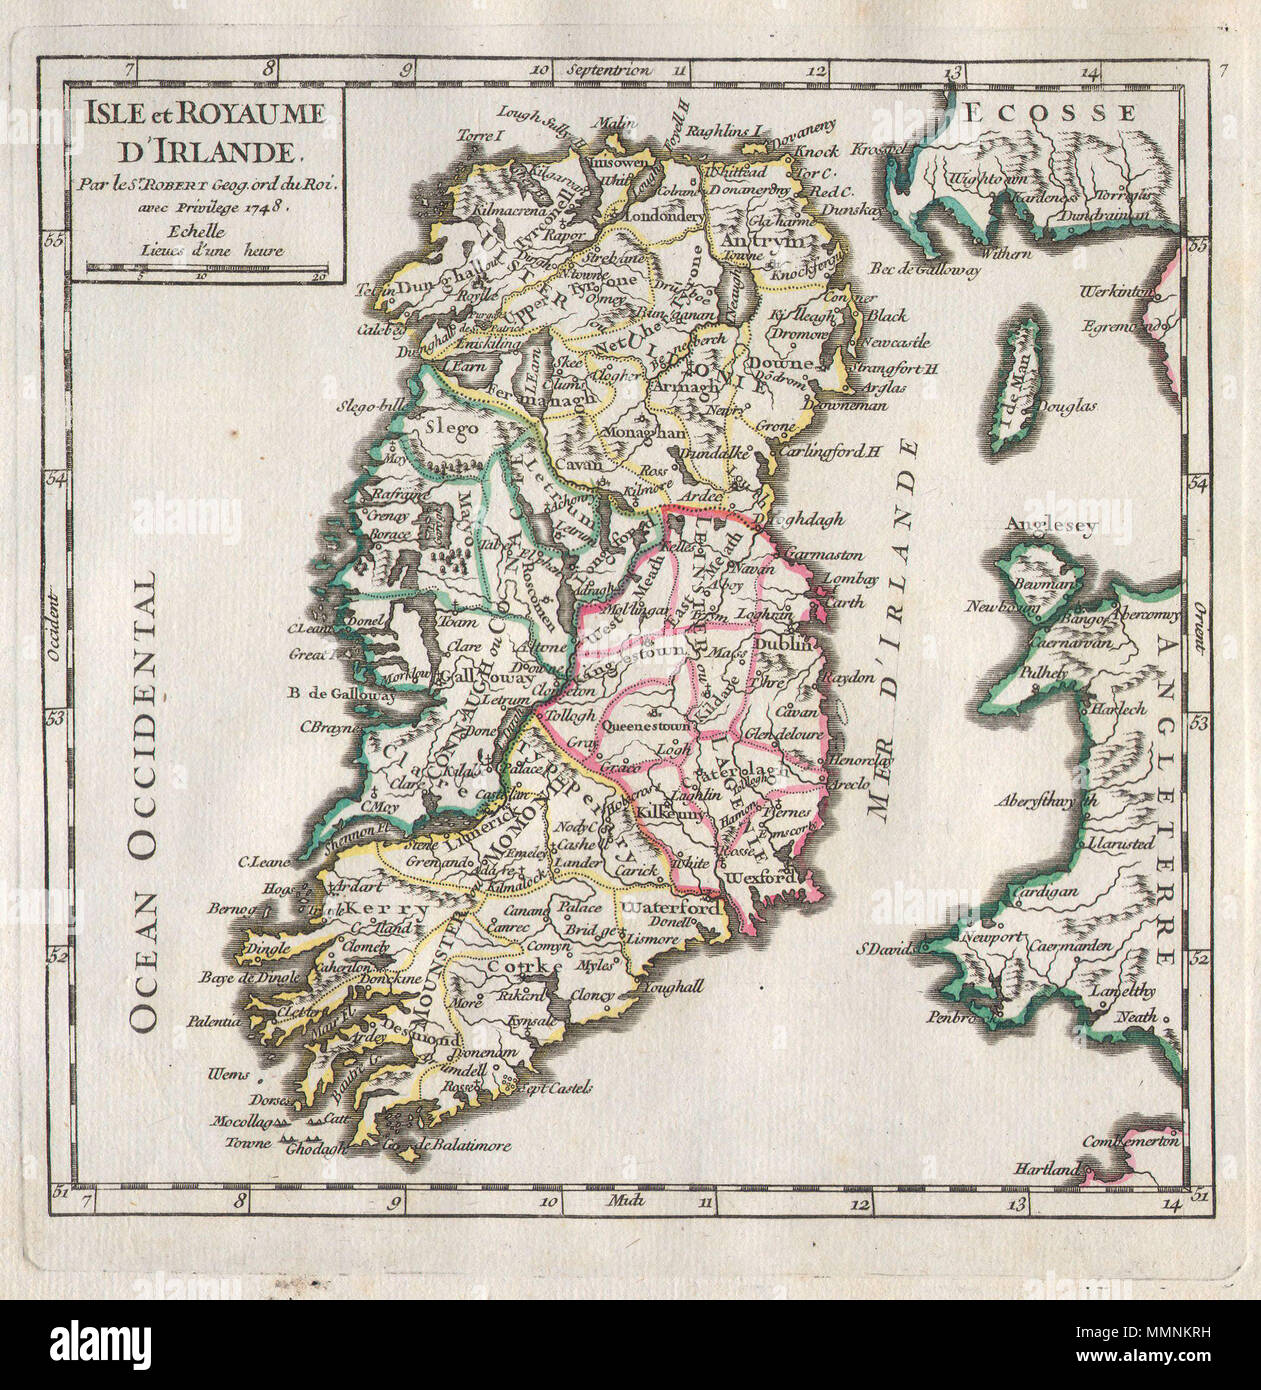 Regional Map Of Ireland.English A Rare And Beautiful 1748 Map Of Ireland By The French